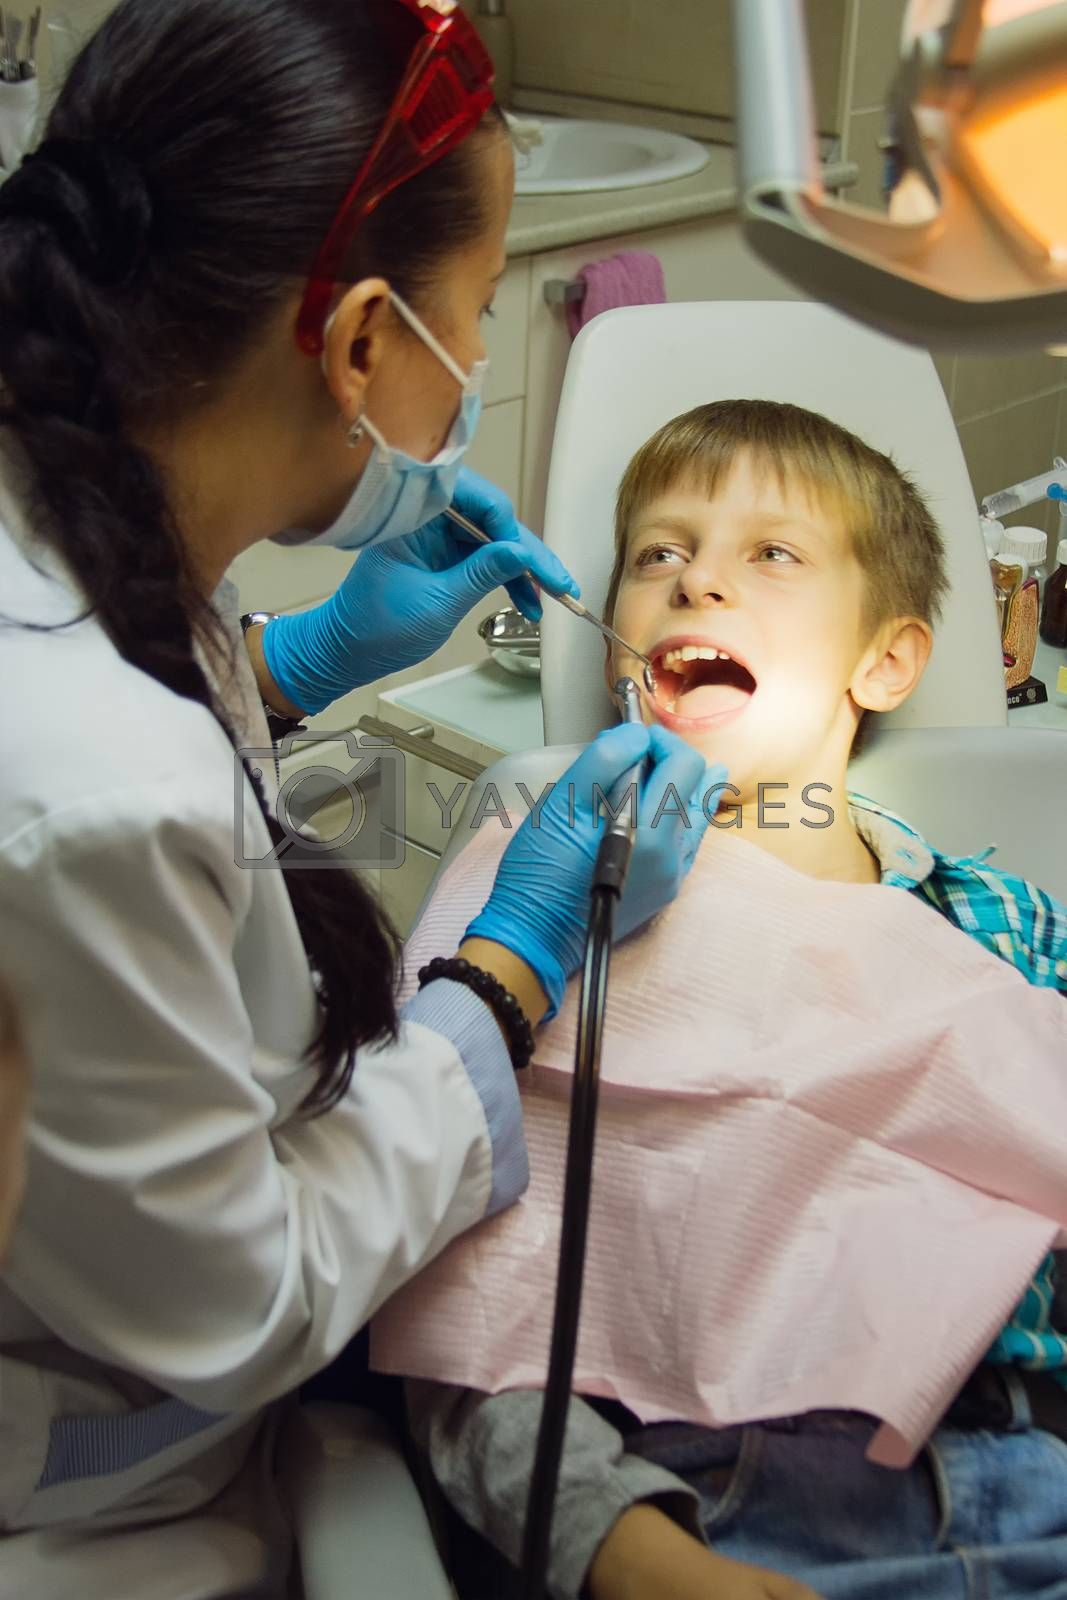 Healthy teeth child patient at dentist office dental caries prevention